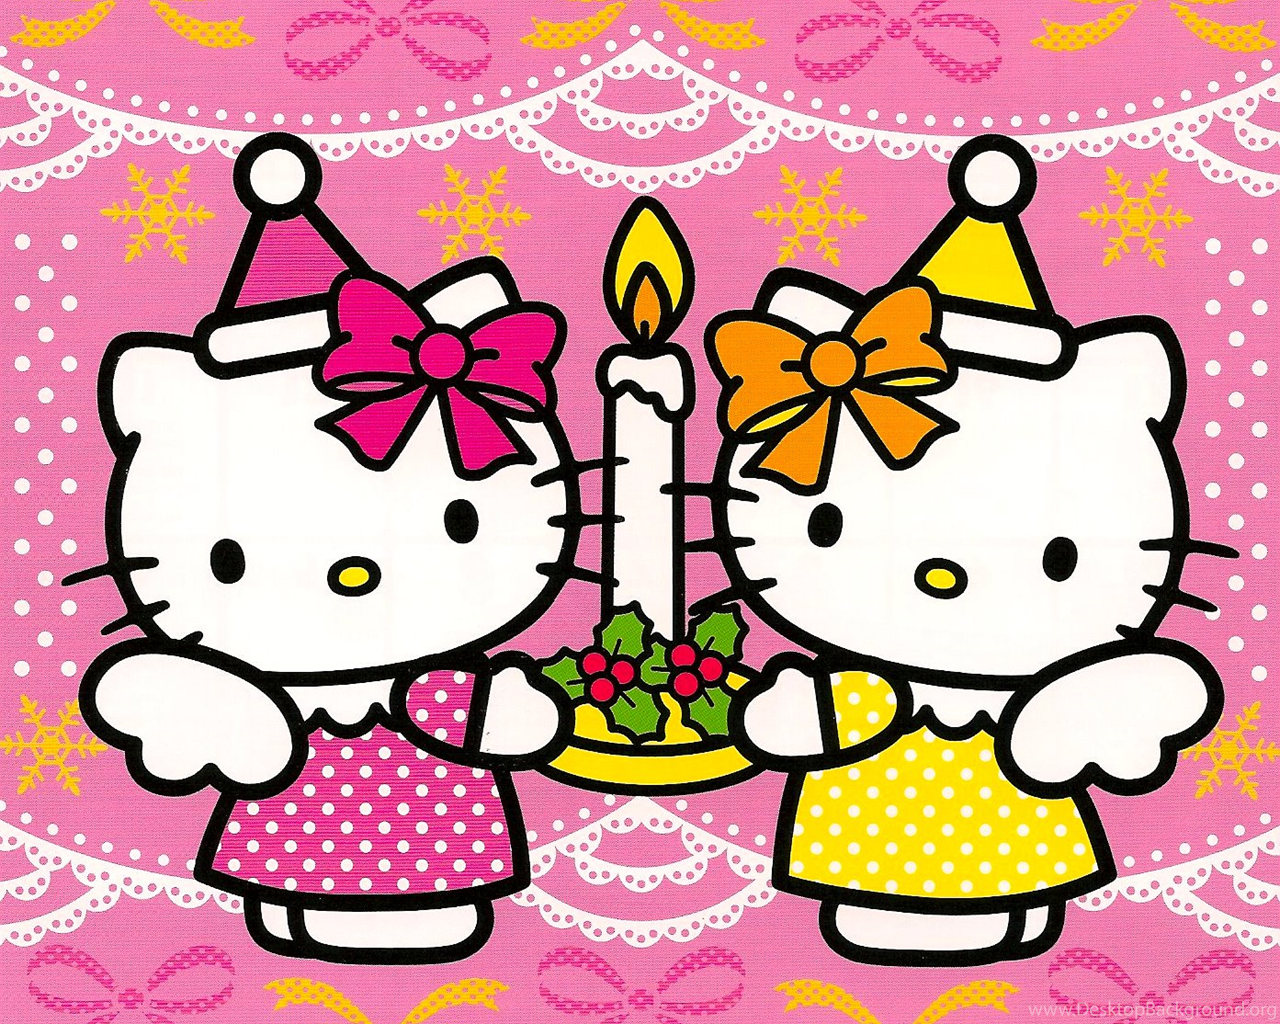 download foto hello kitty terbaru 2013 choice image